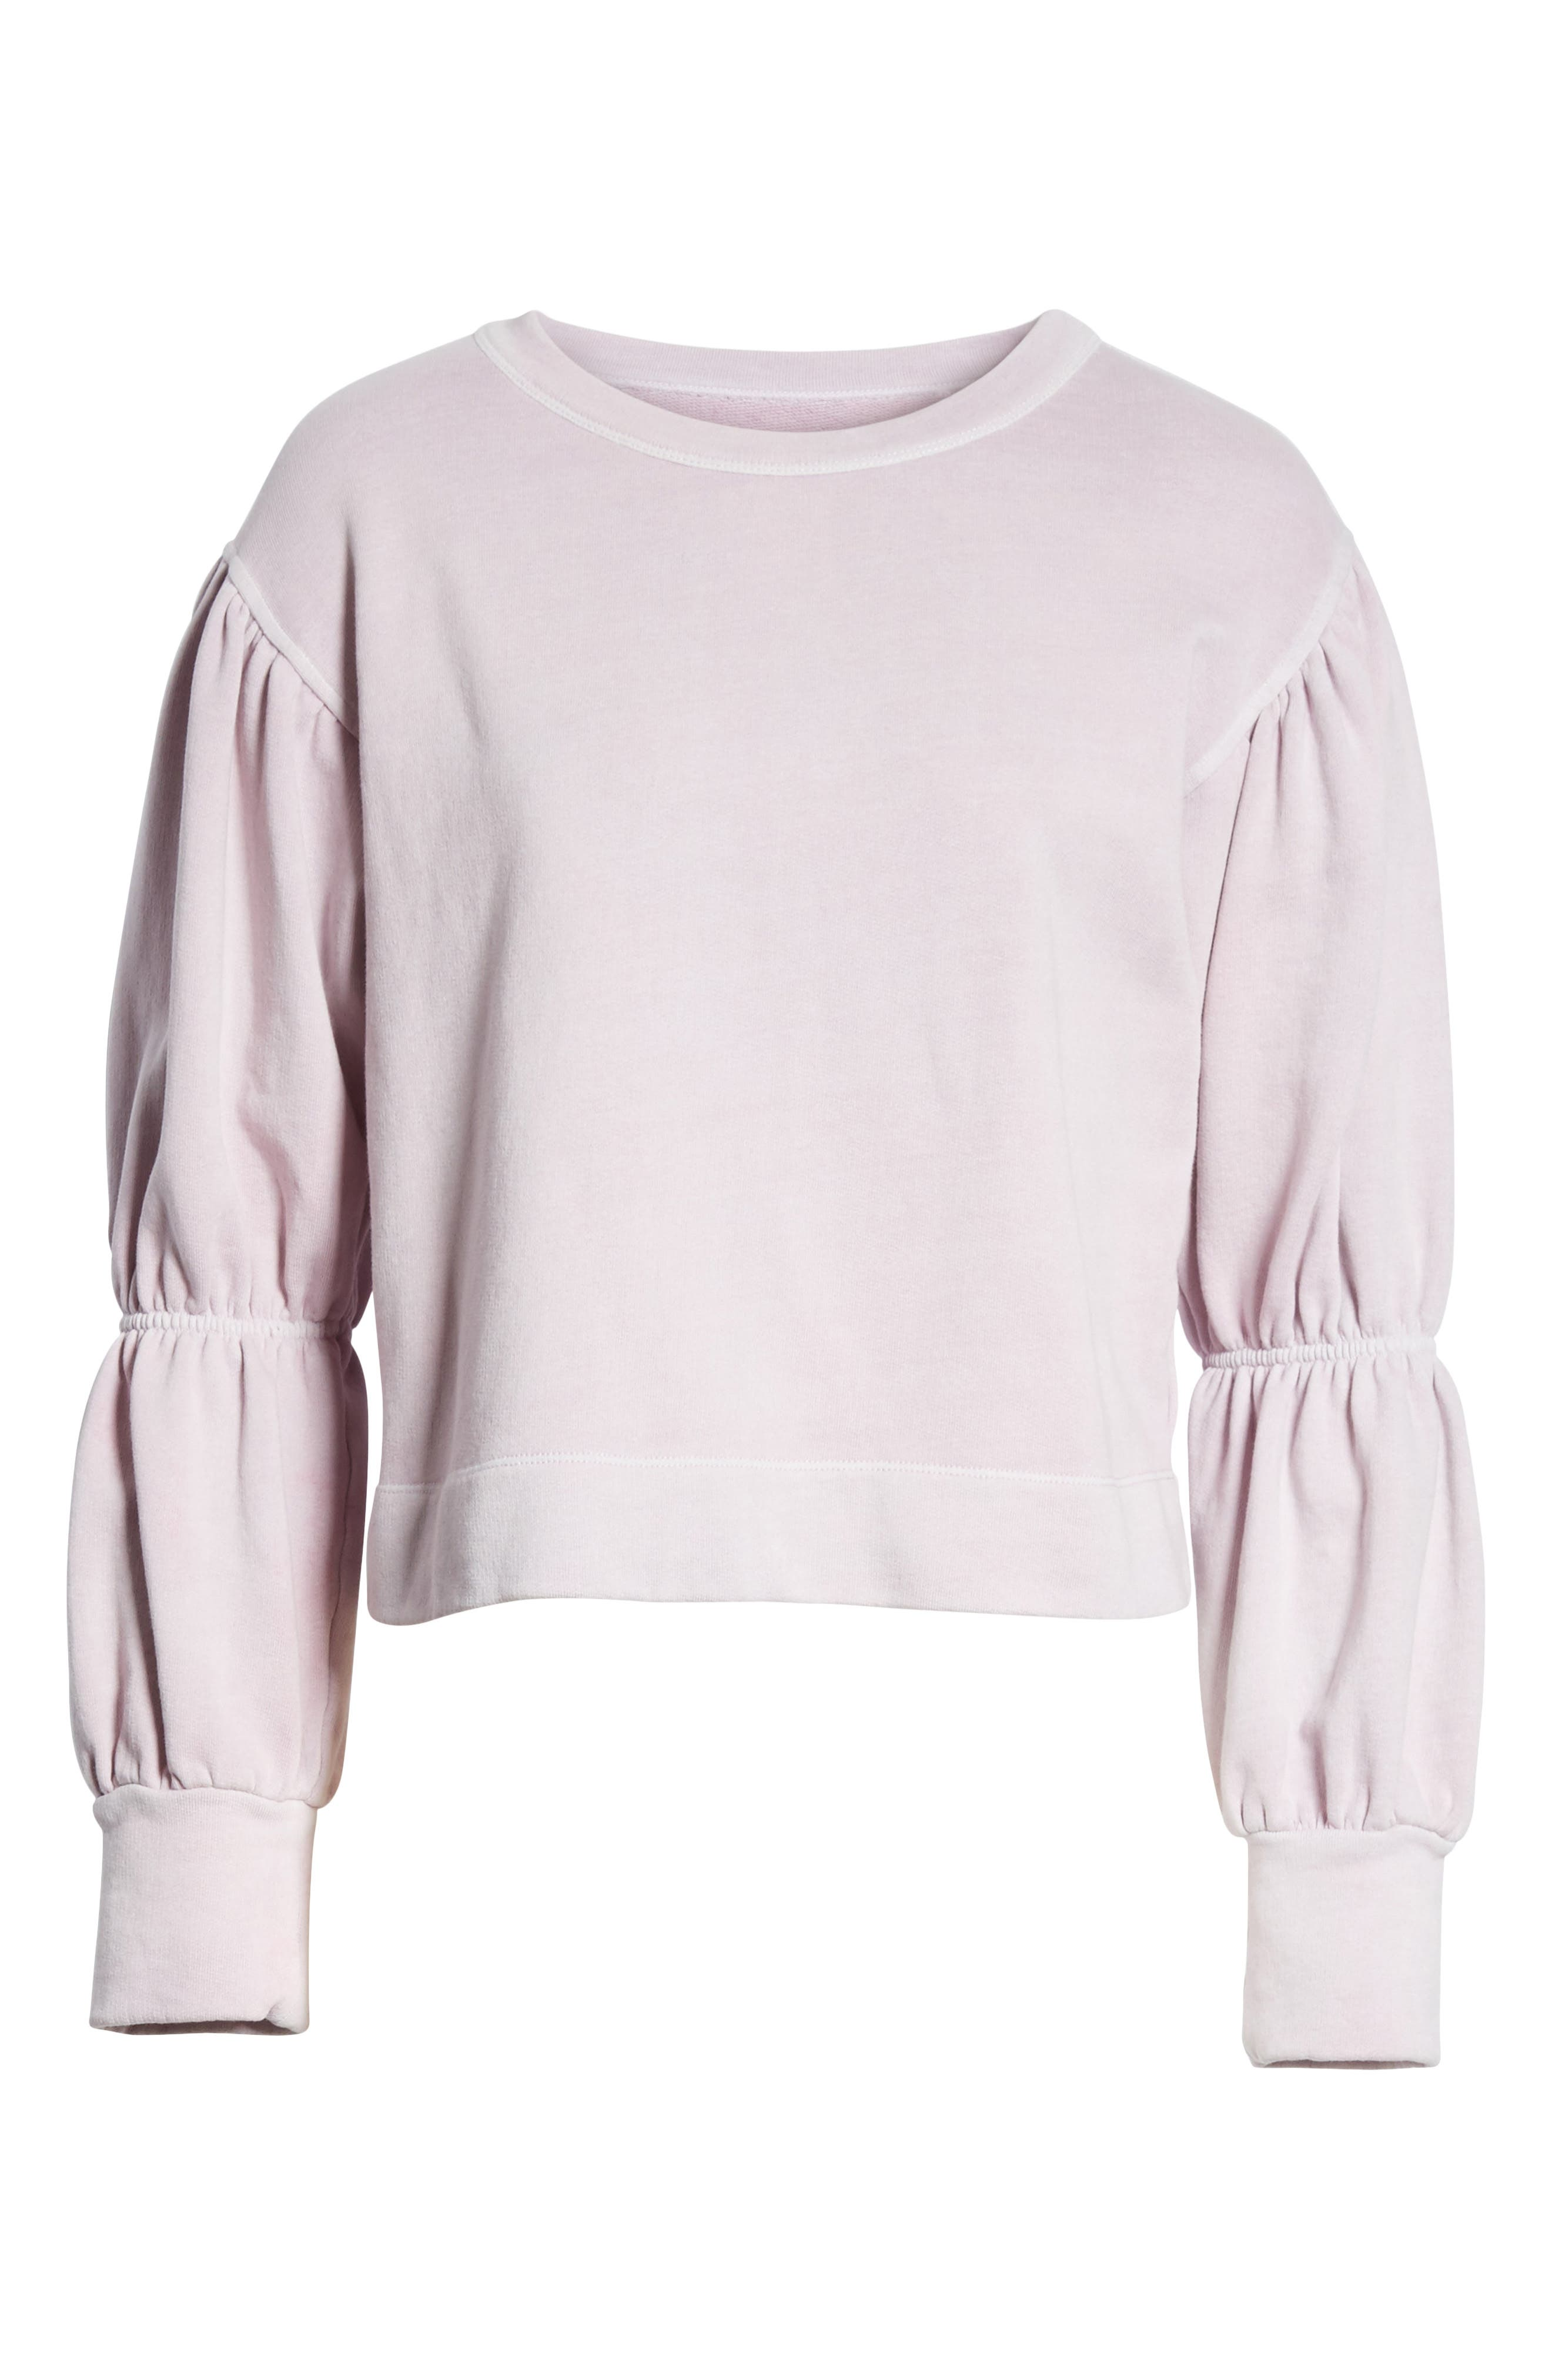 French Terry Pullover,                             Alternate thumbnail 6, color,                             561